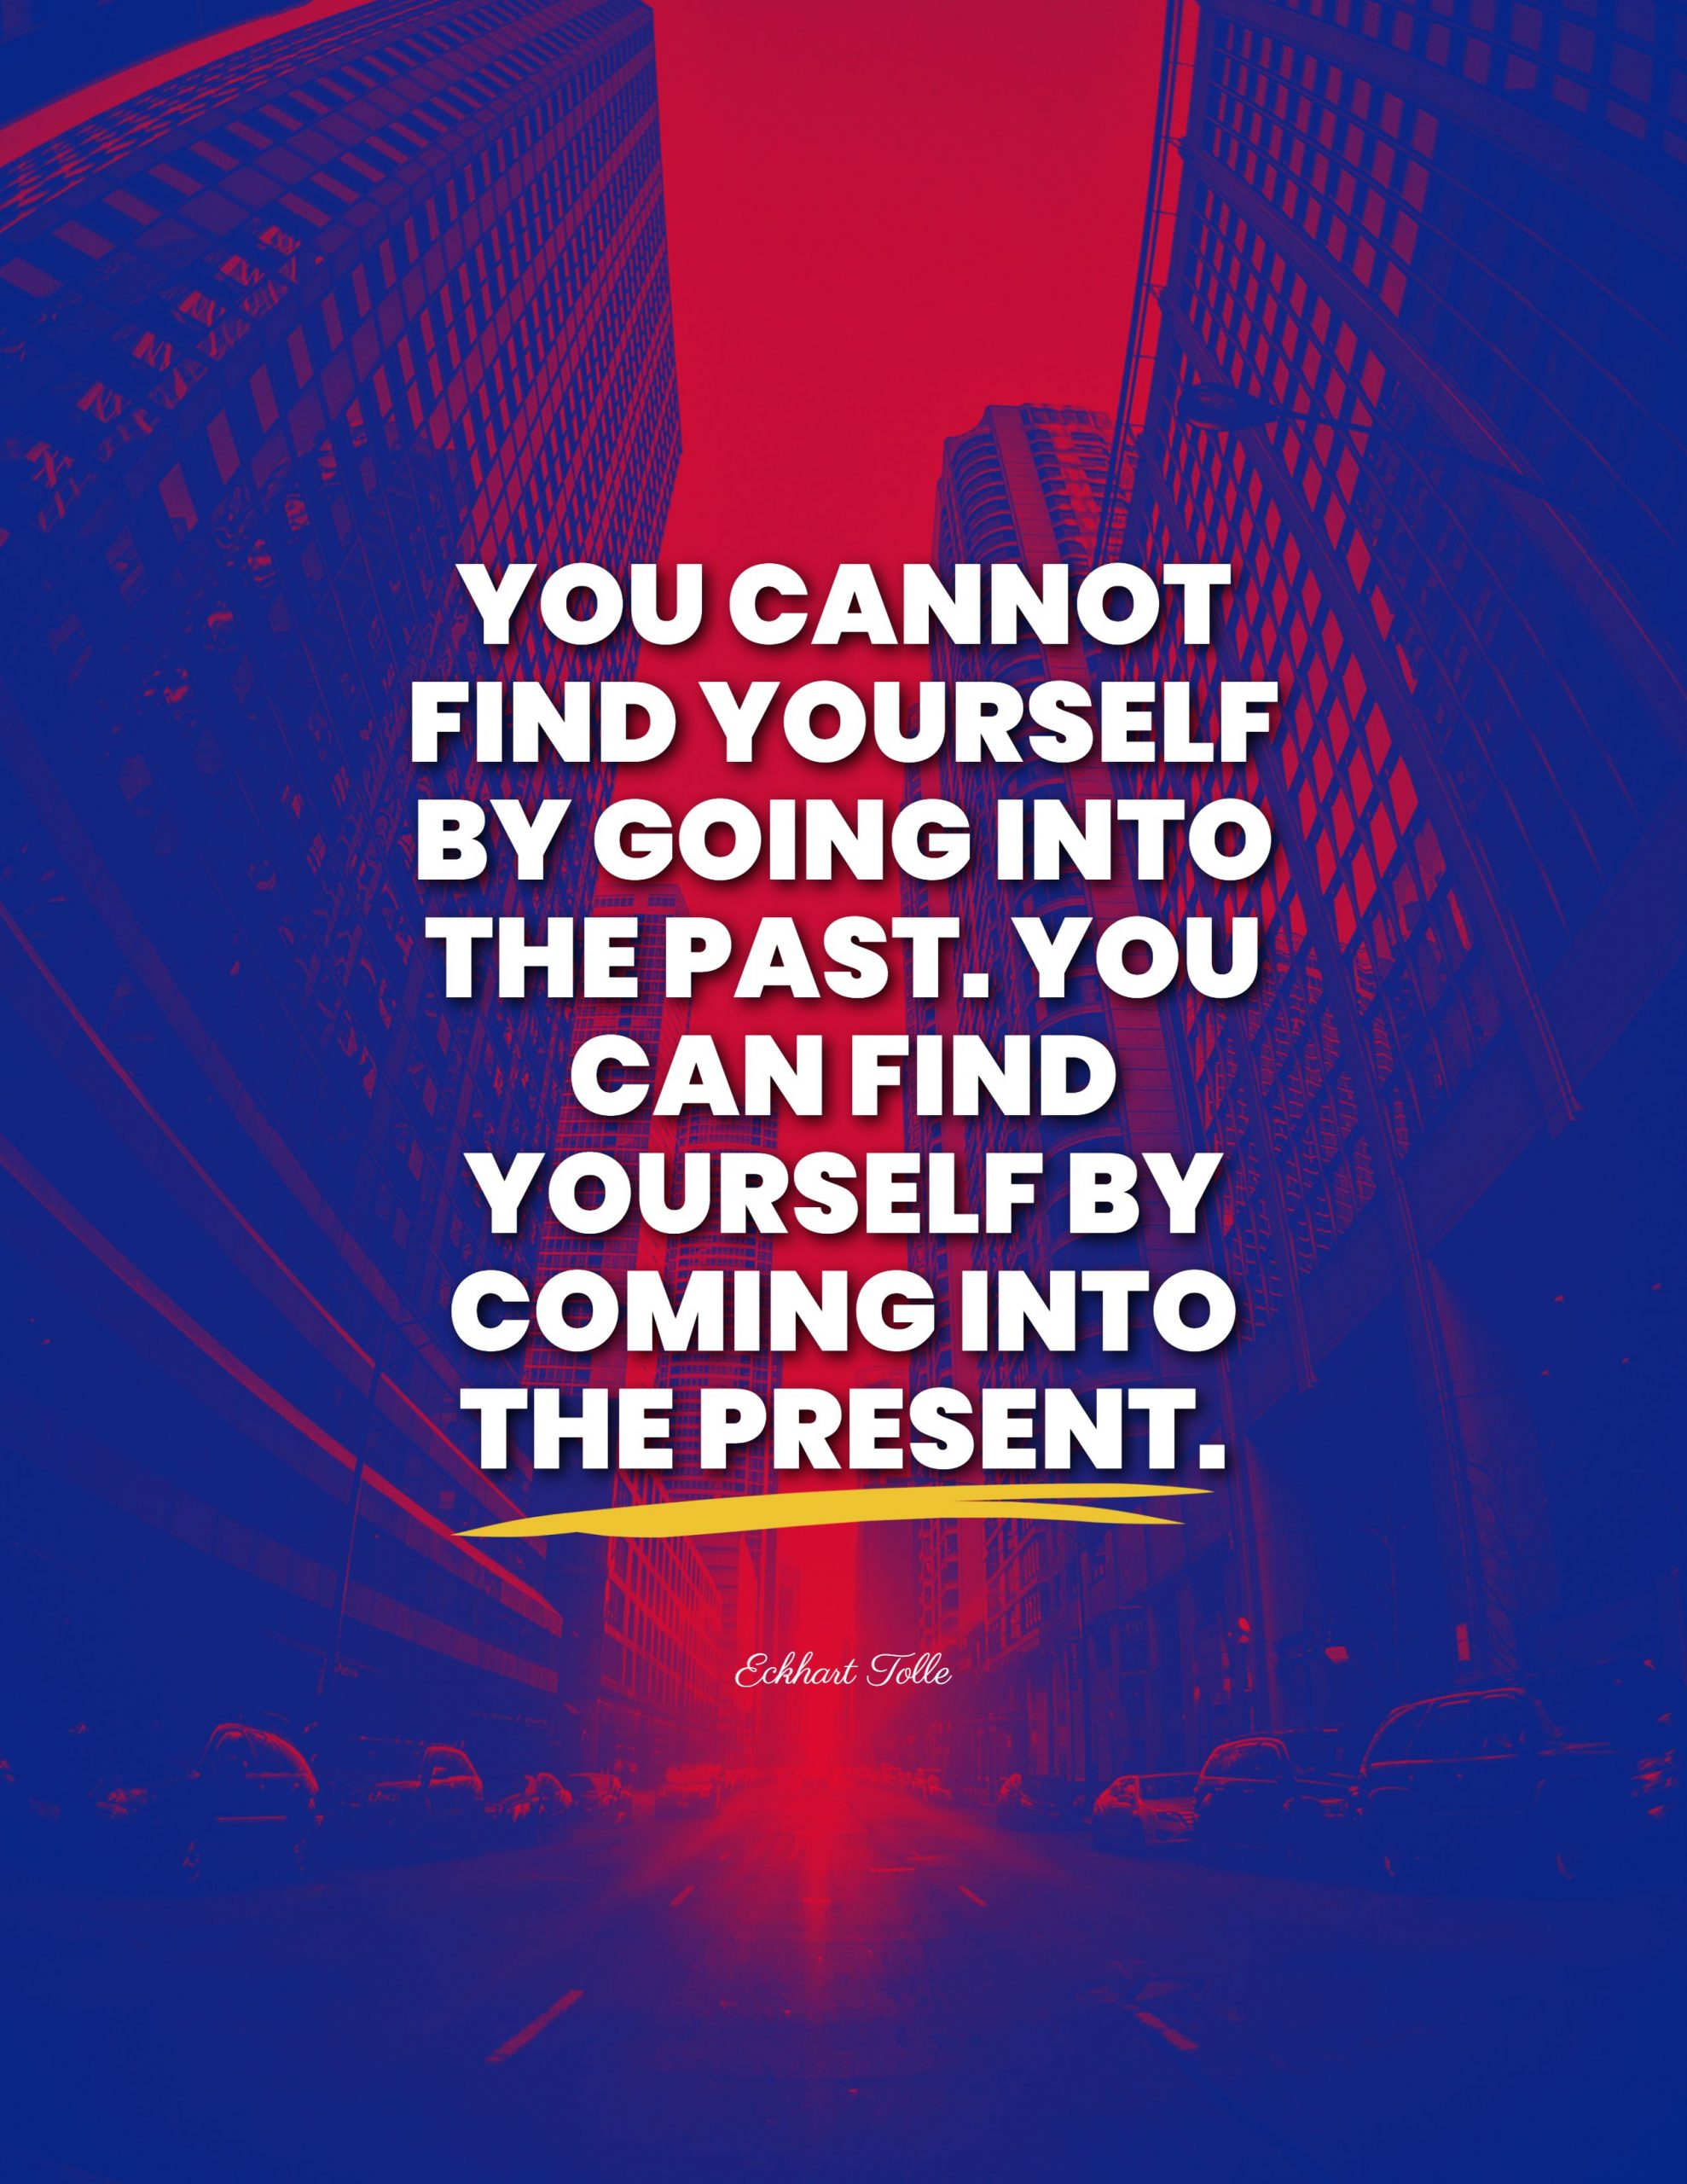 Quotes image of You cannot find yourself by going into the past. You can find yourself by coming into the present.